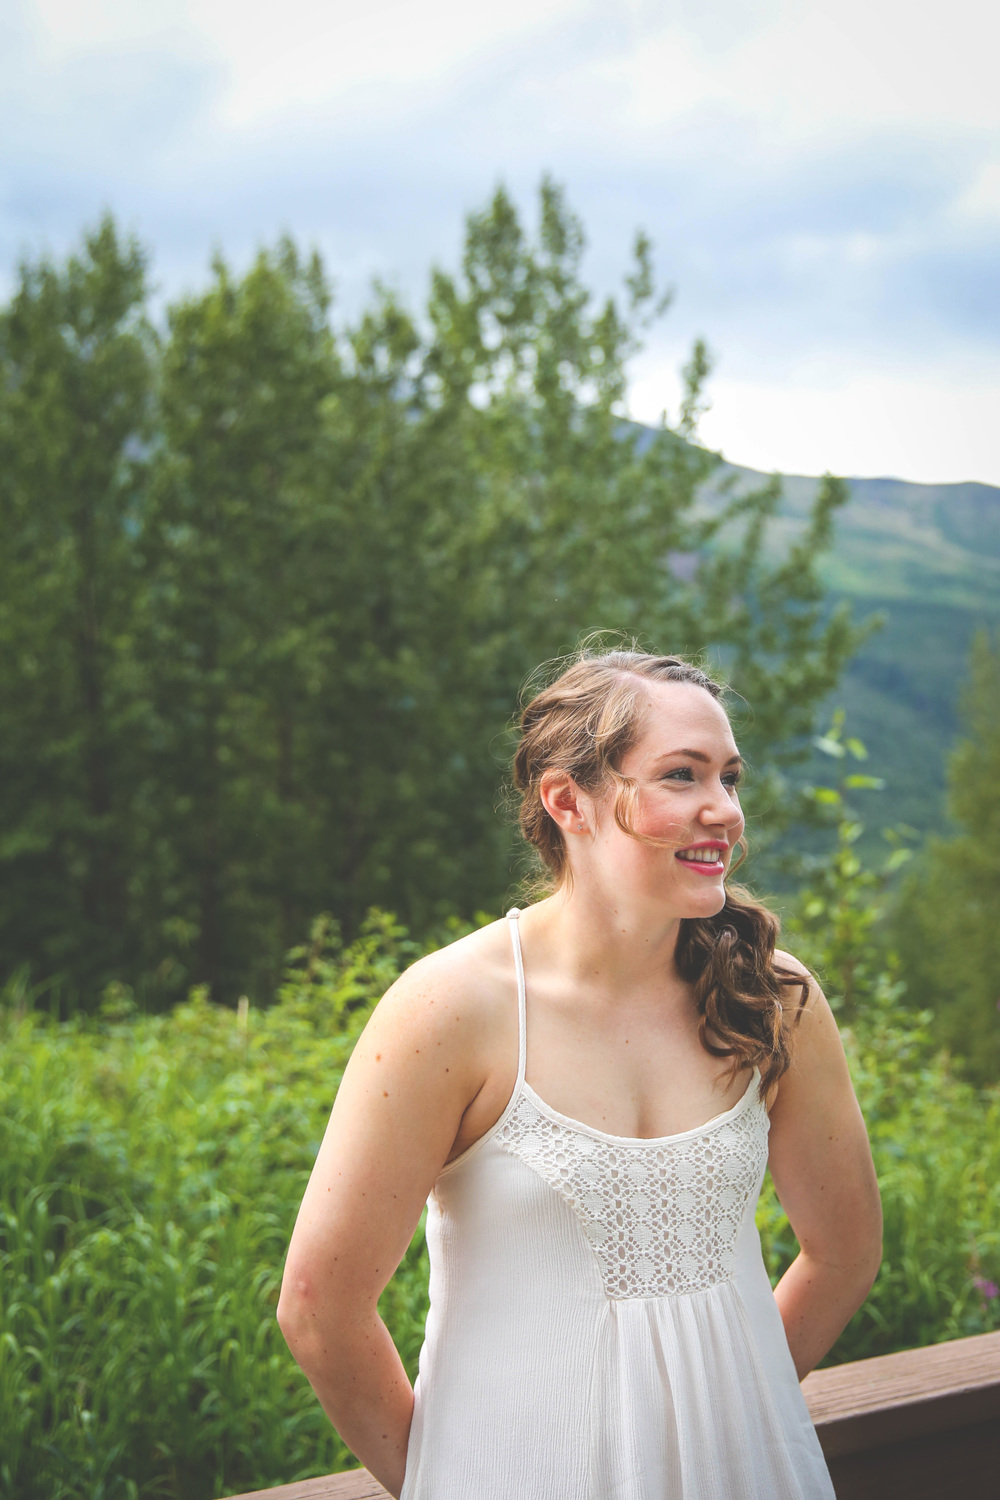 Hannah was one of those enviable brides who just makes it all look so easy! She was absolutely stunning, and was a real trooper when it came to hiking in heels and suffering through the mosquito attacks.